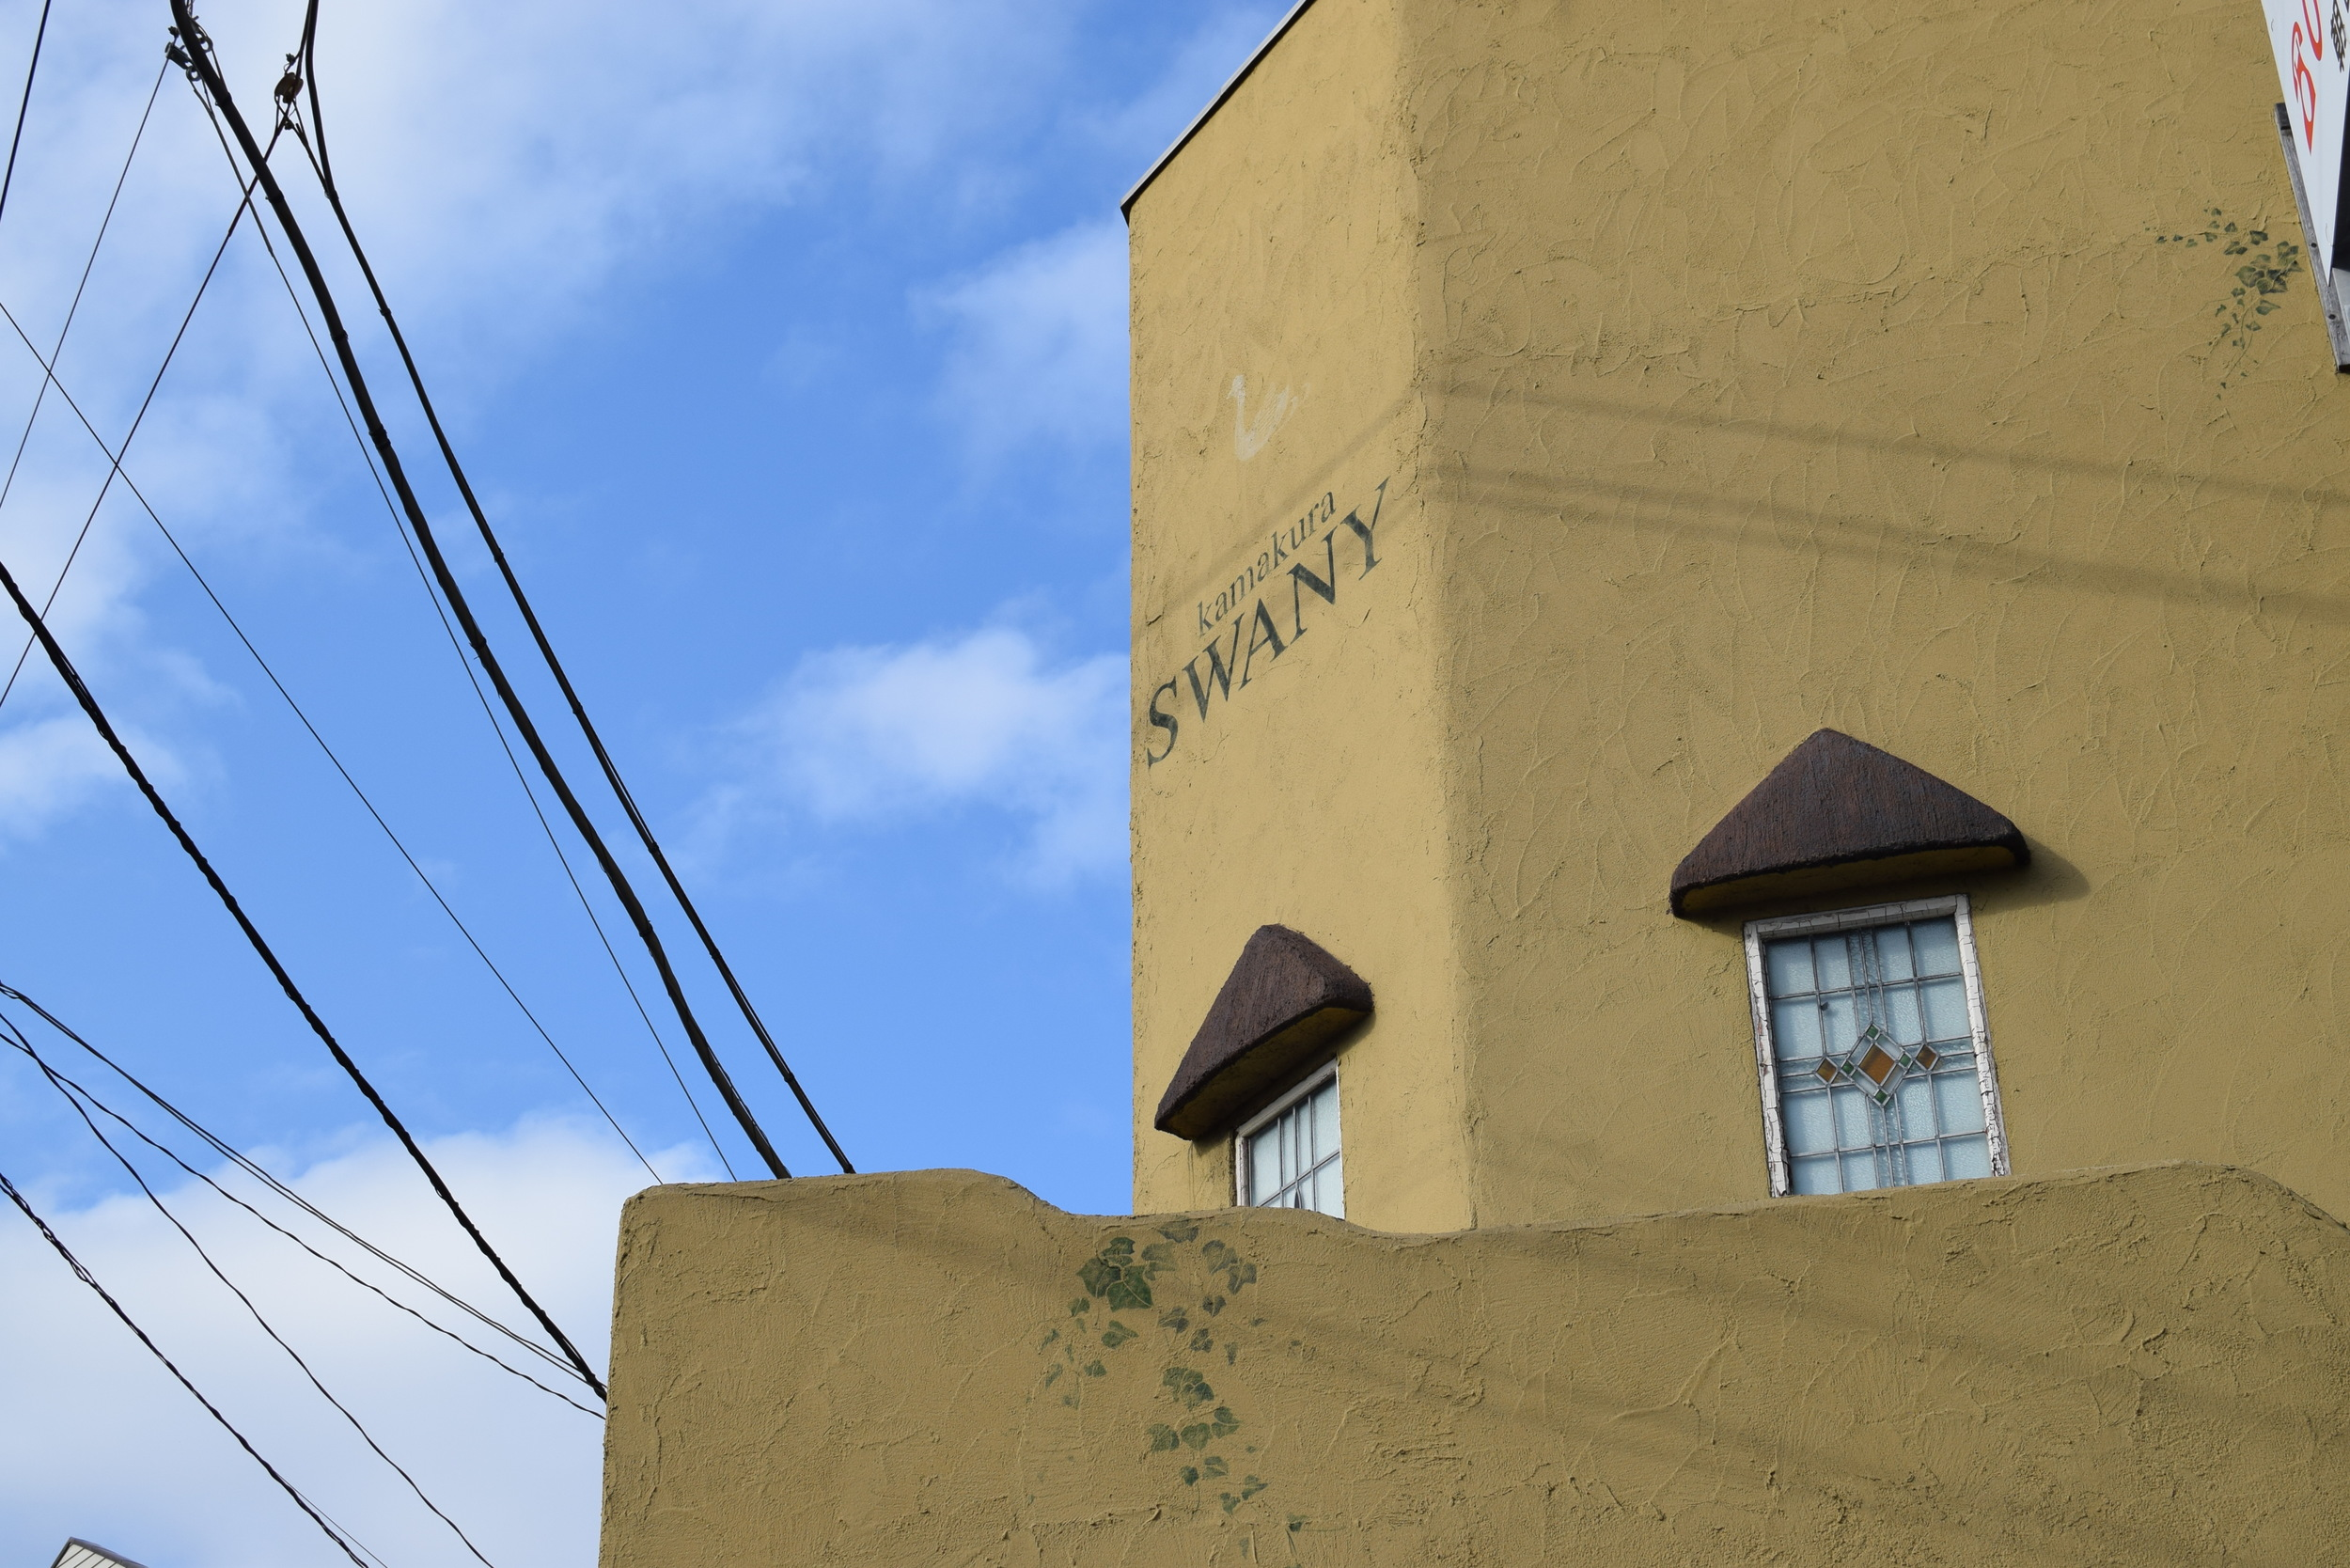 Swany - the original building